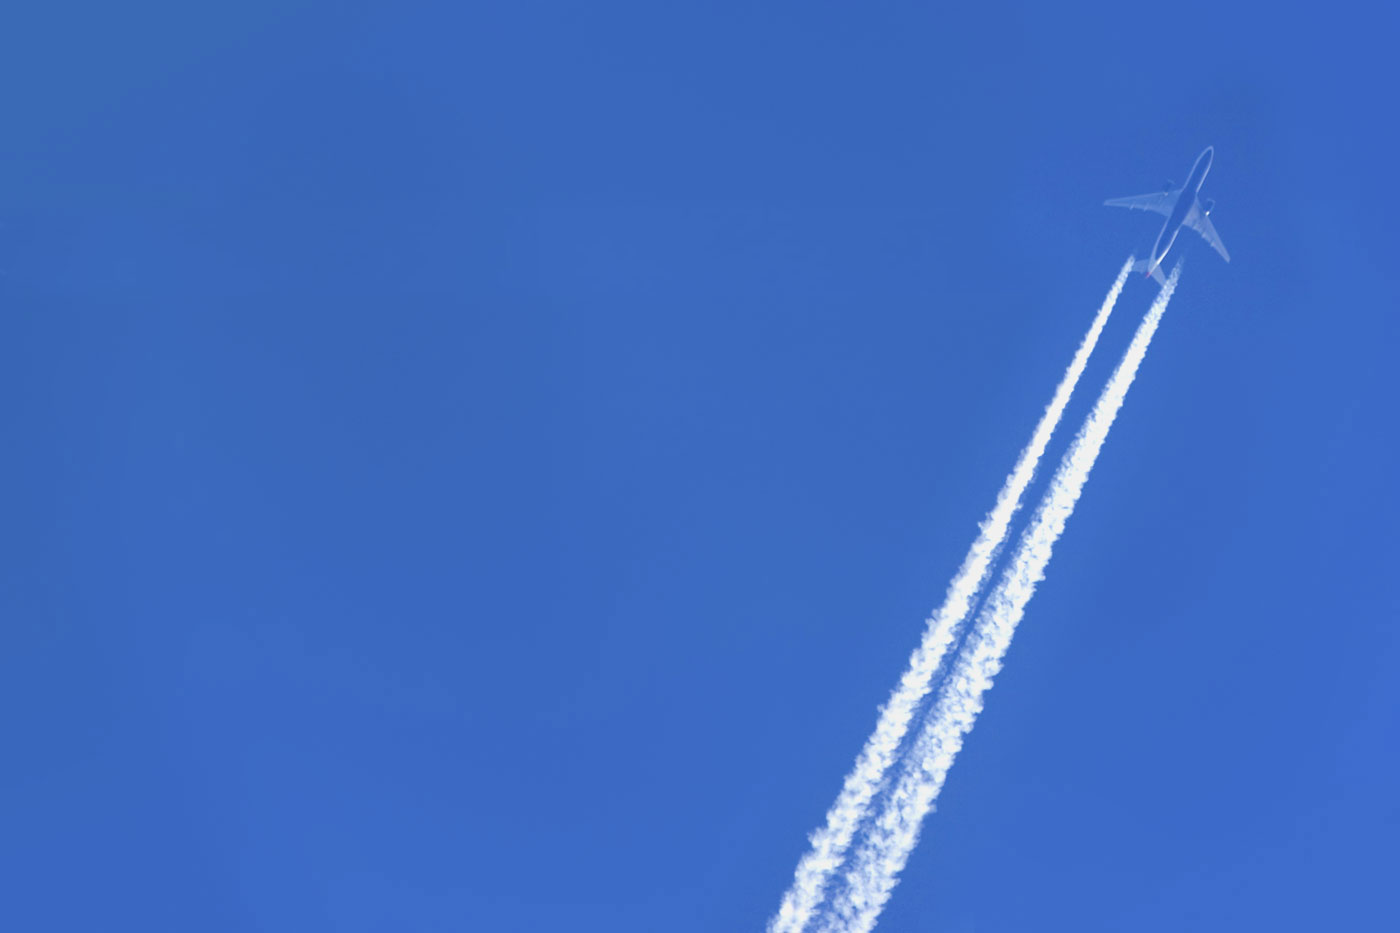 Aircraft and Aviation Contrail